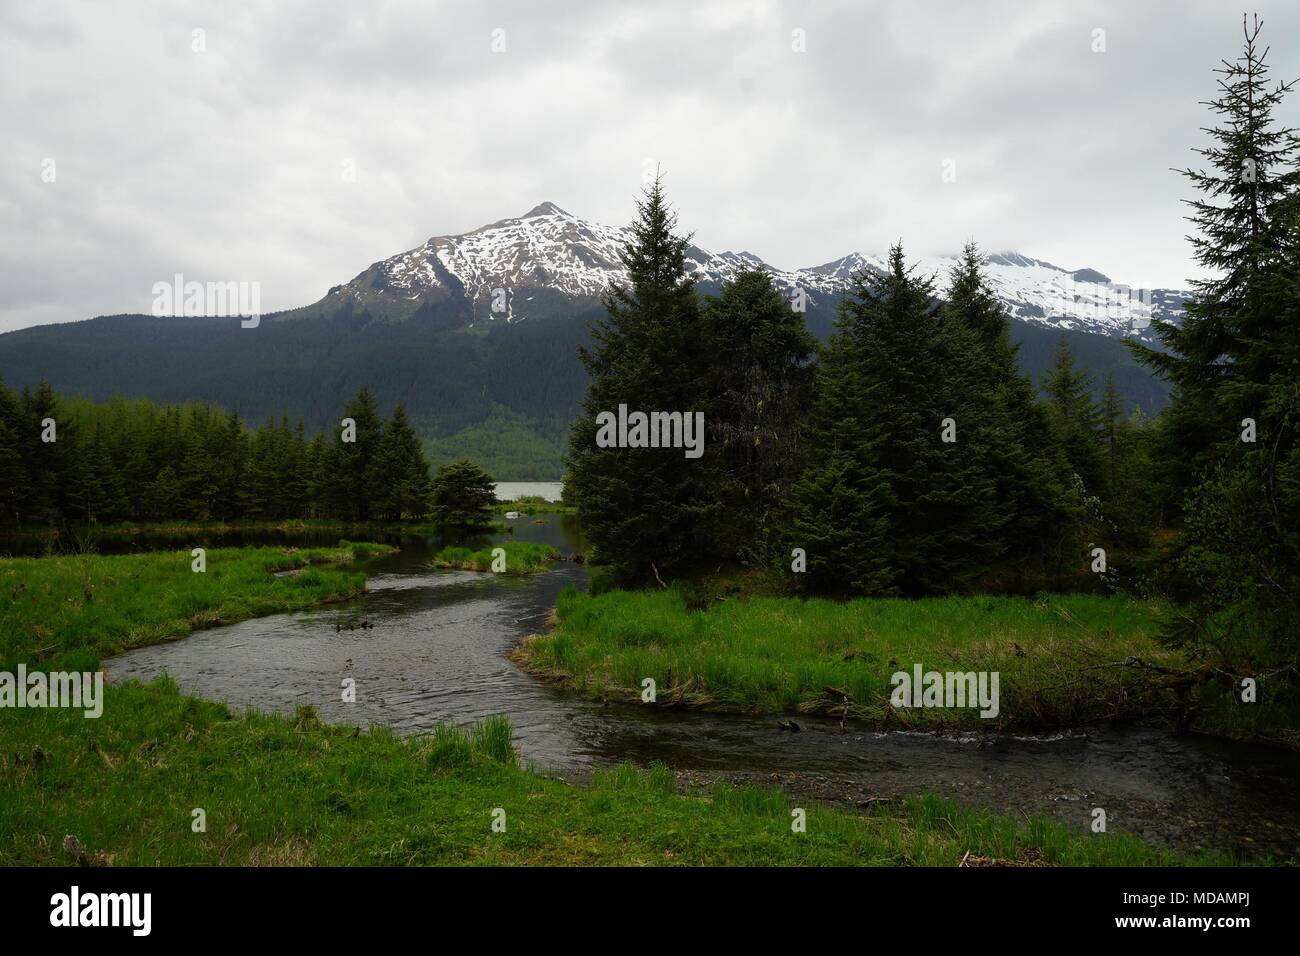 River, forest and mountains near Mendenhall Glacier, Alaska. - Stock Image